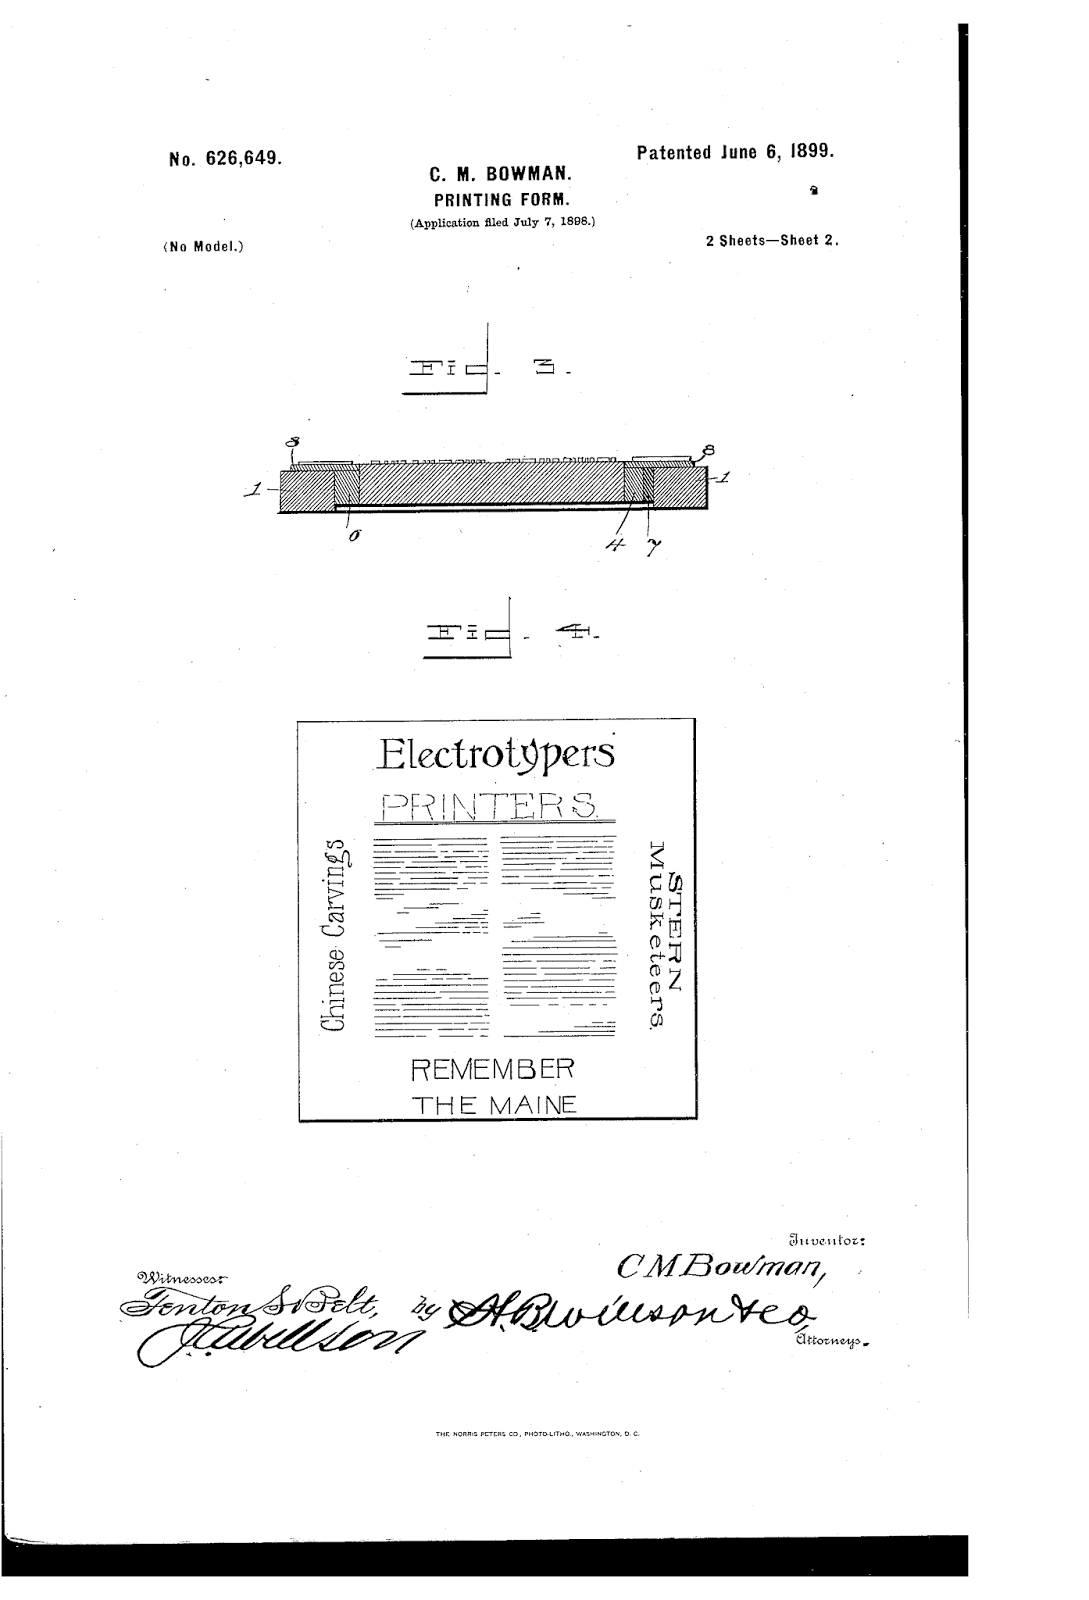 THE PATENT SEARCH BLOG: The Spanish